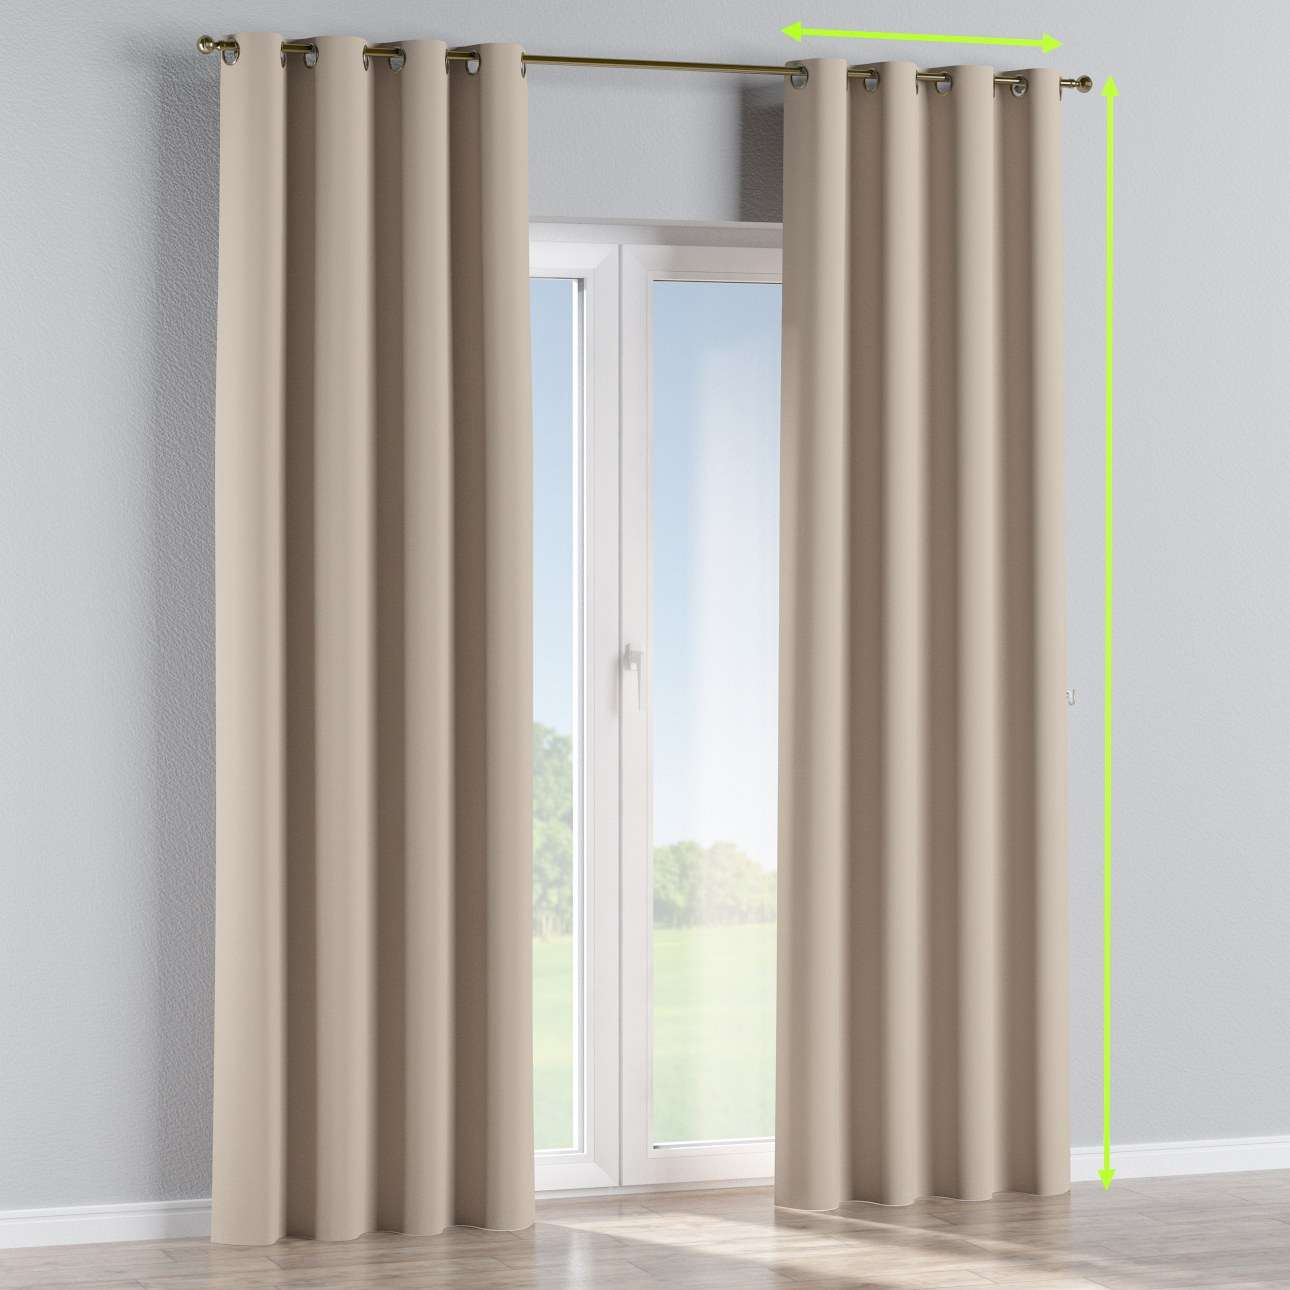 Eyelet curtain in collection Blackout, fabric: 269-00